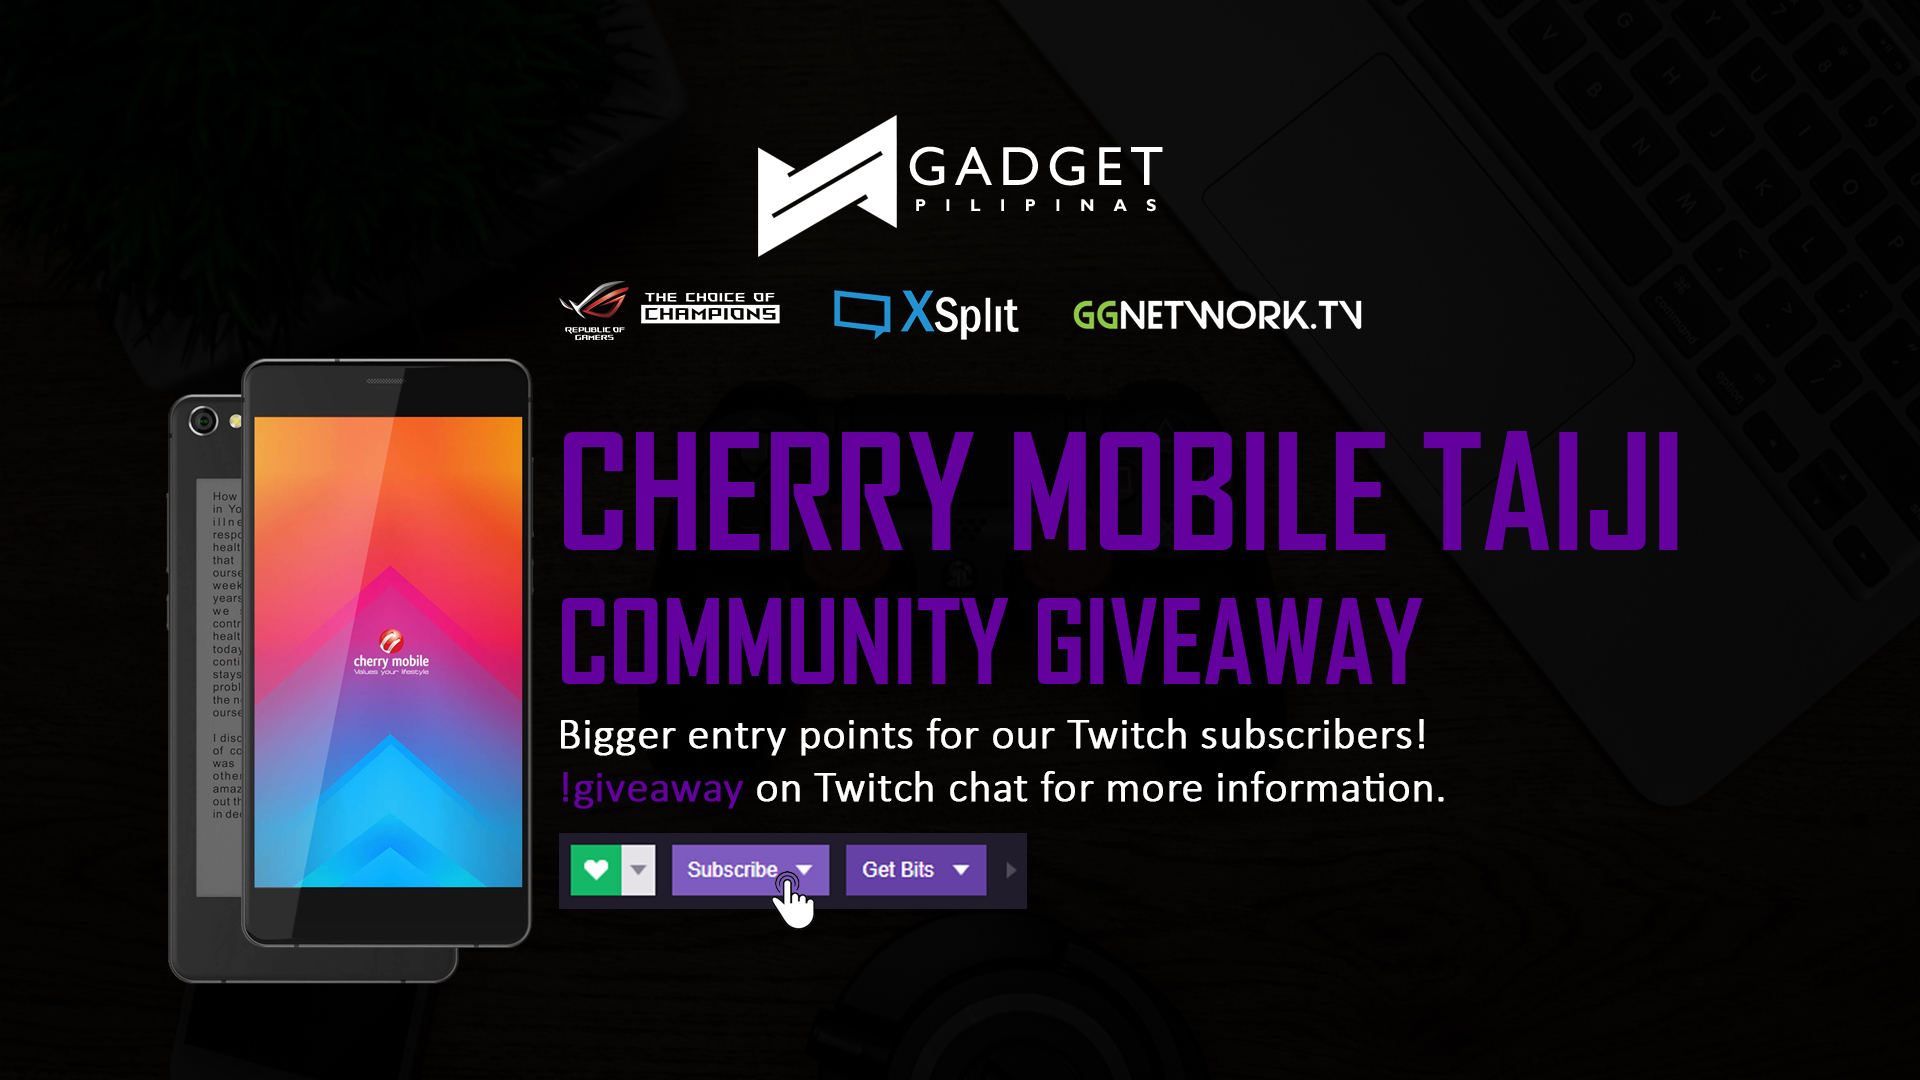 Cherry Mobile Taiji Community Giveaway